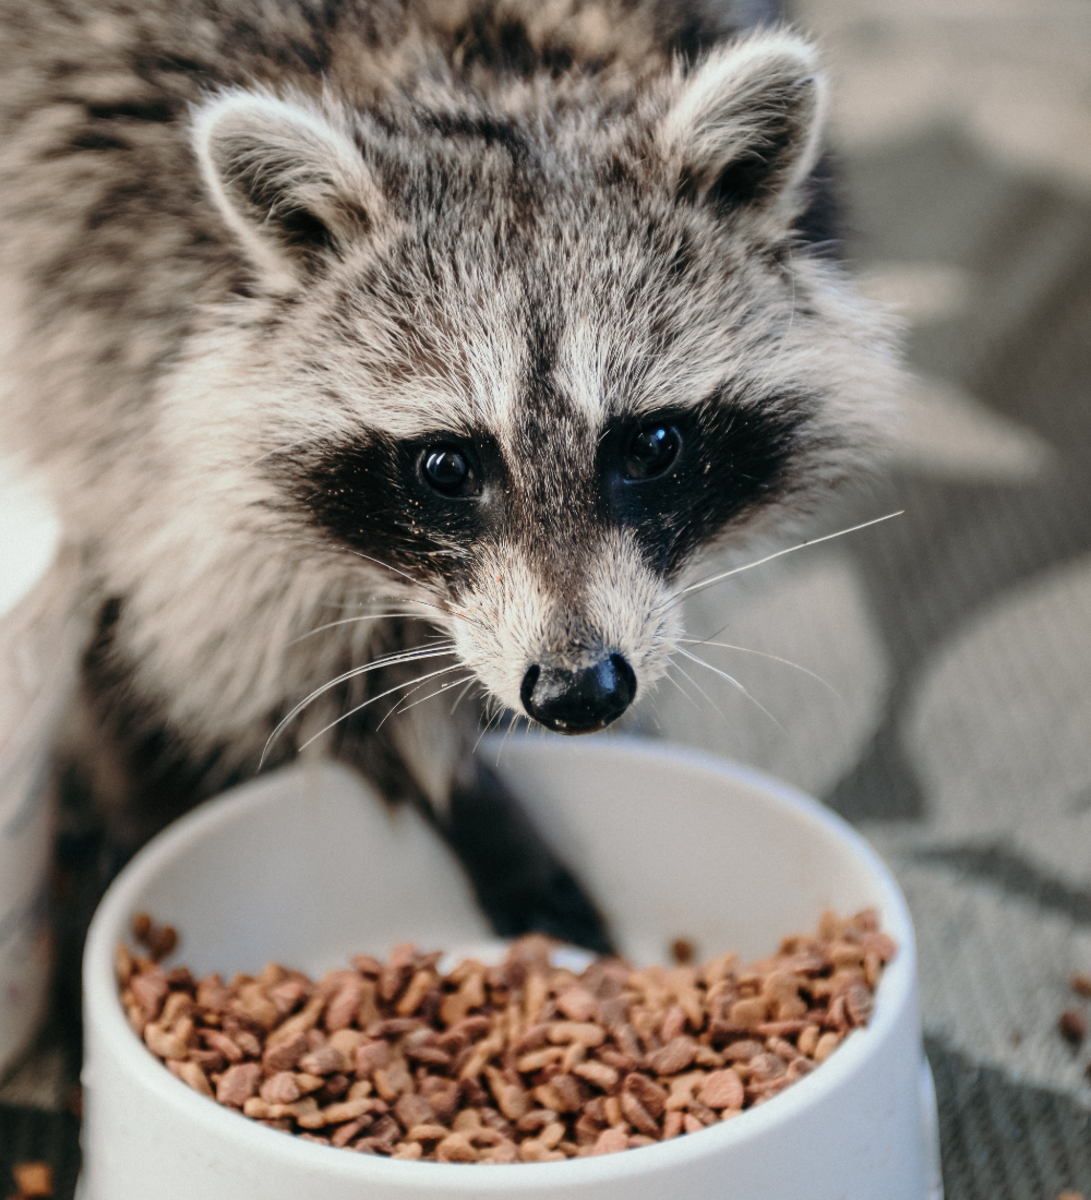 Raccoons LOVE pet food. If you leave any pet food out, they will certainly find it and keep coming back for more.